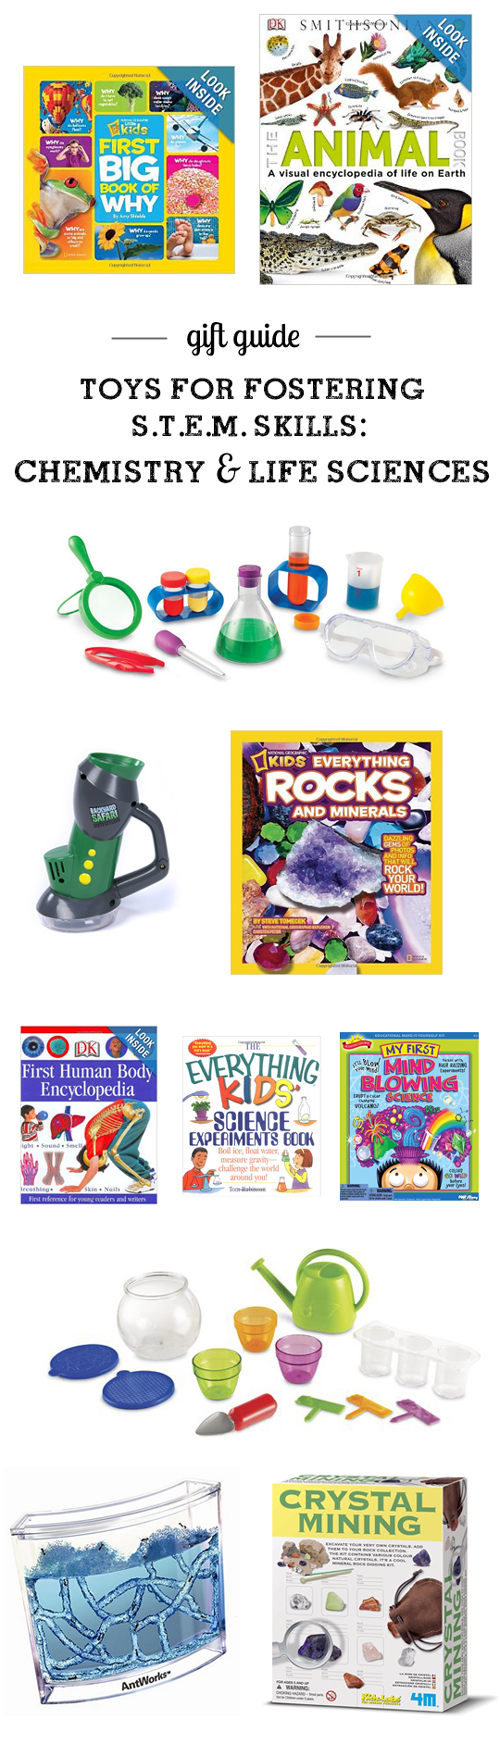 Gift guide: Top S.T.E.M. (Science, Technology, Engineering, & Math) Picks for all ages - so many cool picks I'd never thought of and I love, LOVE the detailed descriptions and age recommendations. Such an amazing resource!